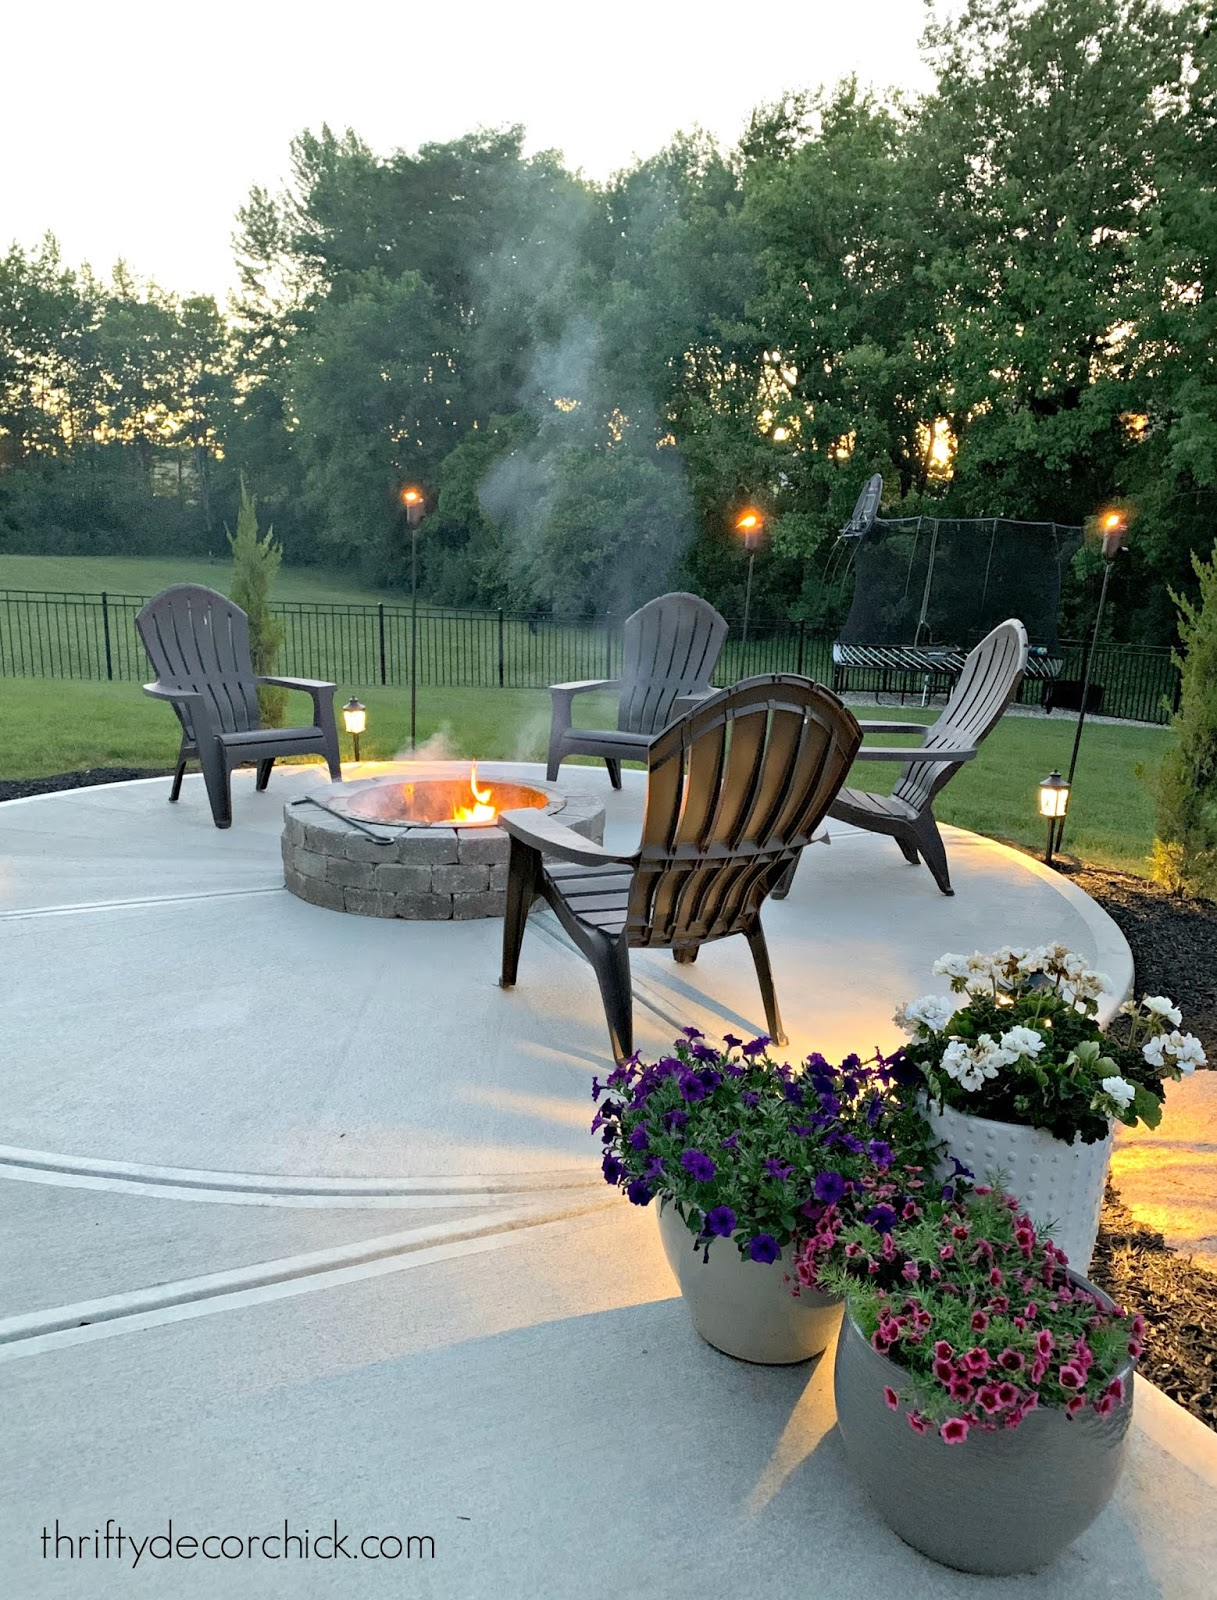 Concrete with round fire pit and chairs